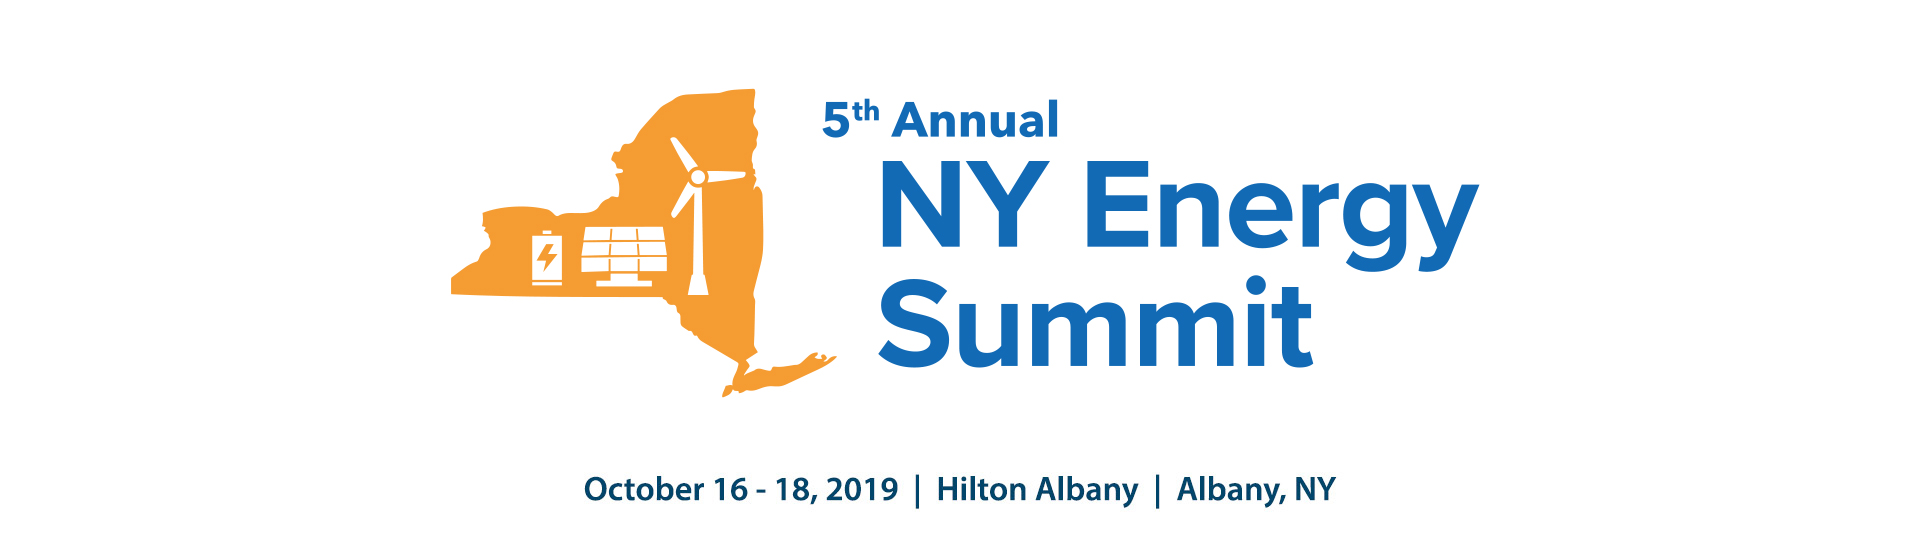 NY Energy Summit - Presented by Infocast